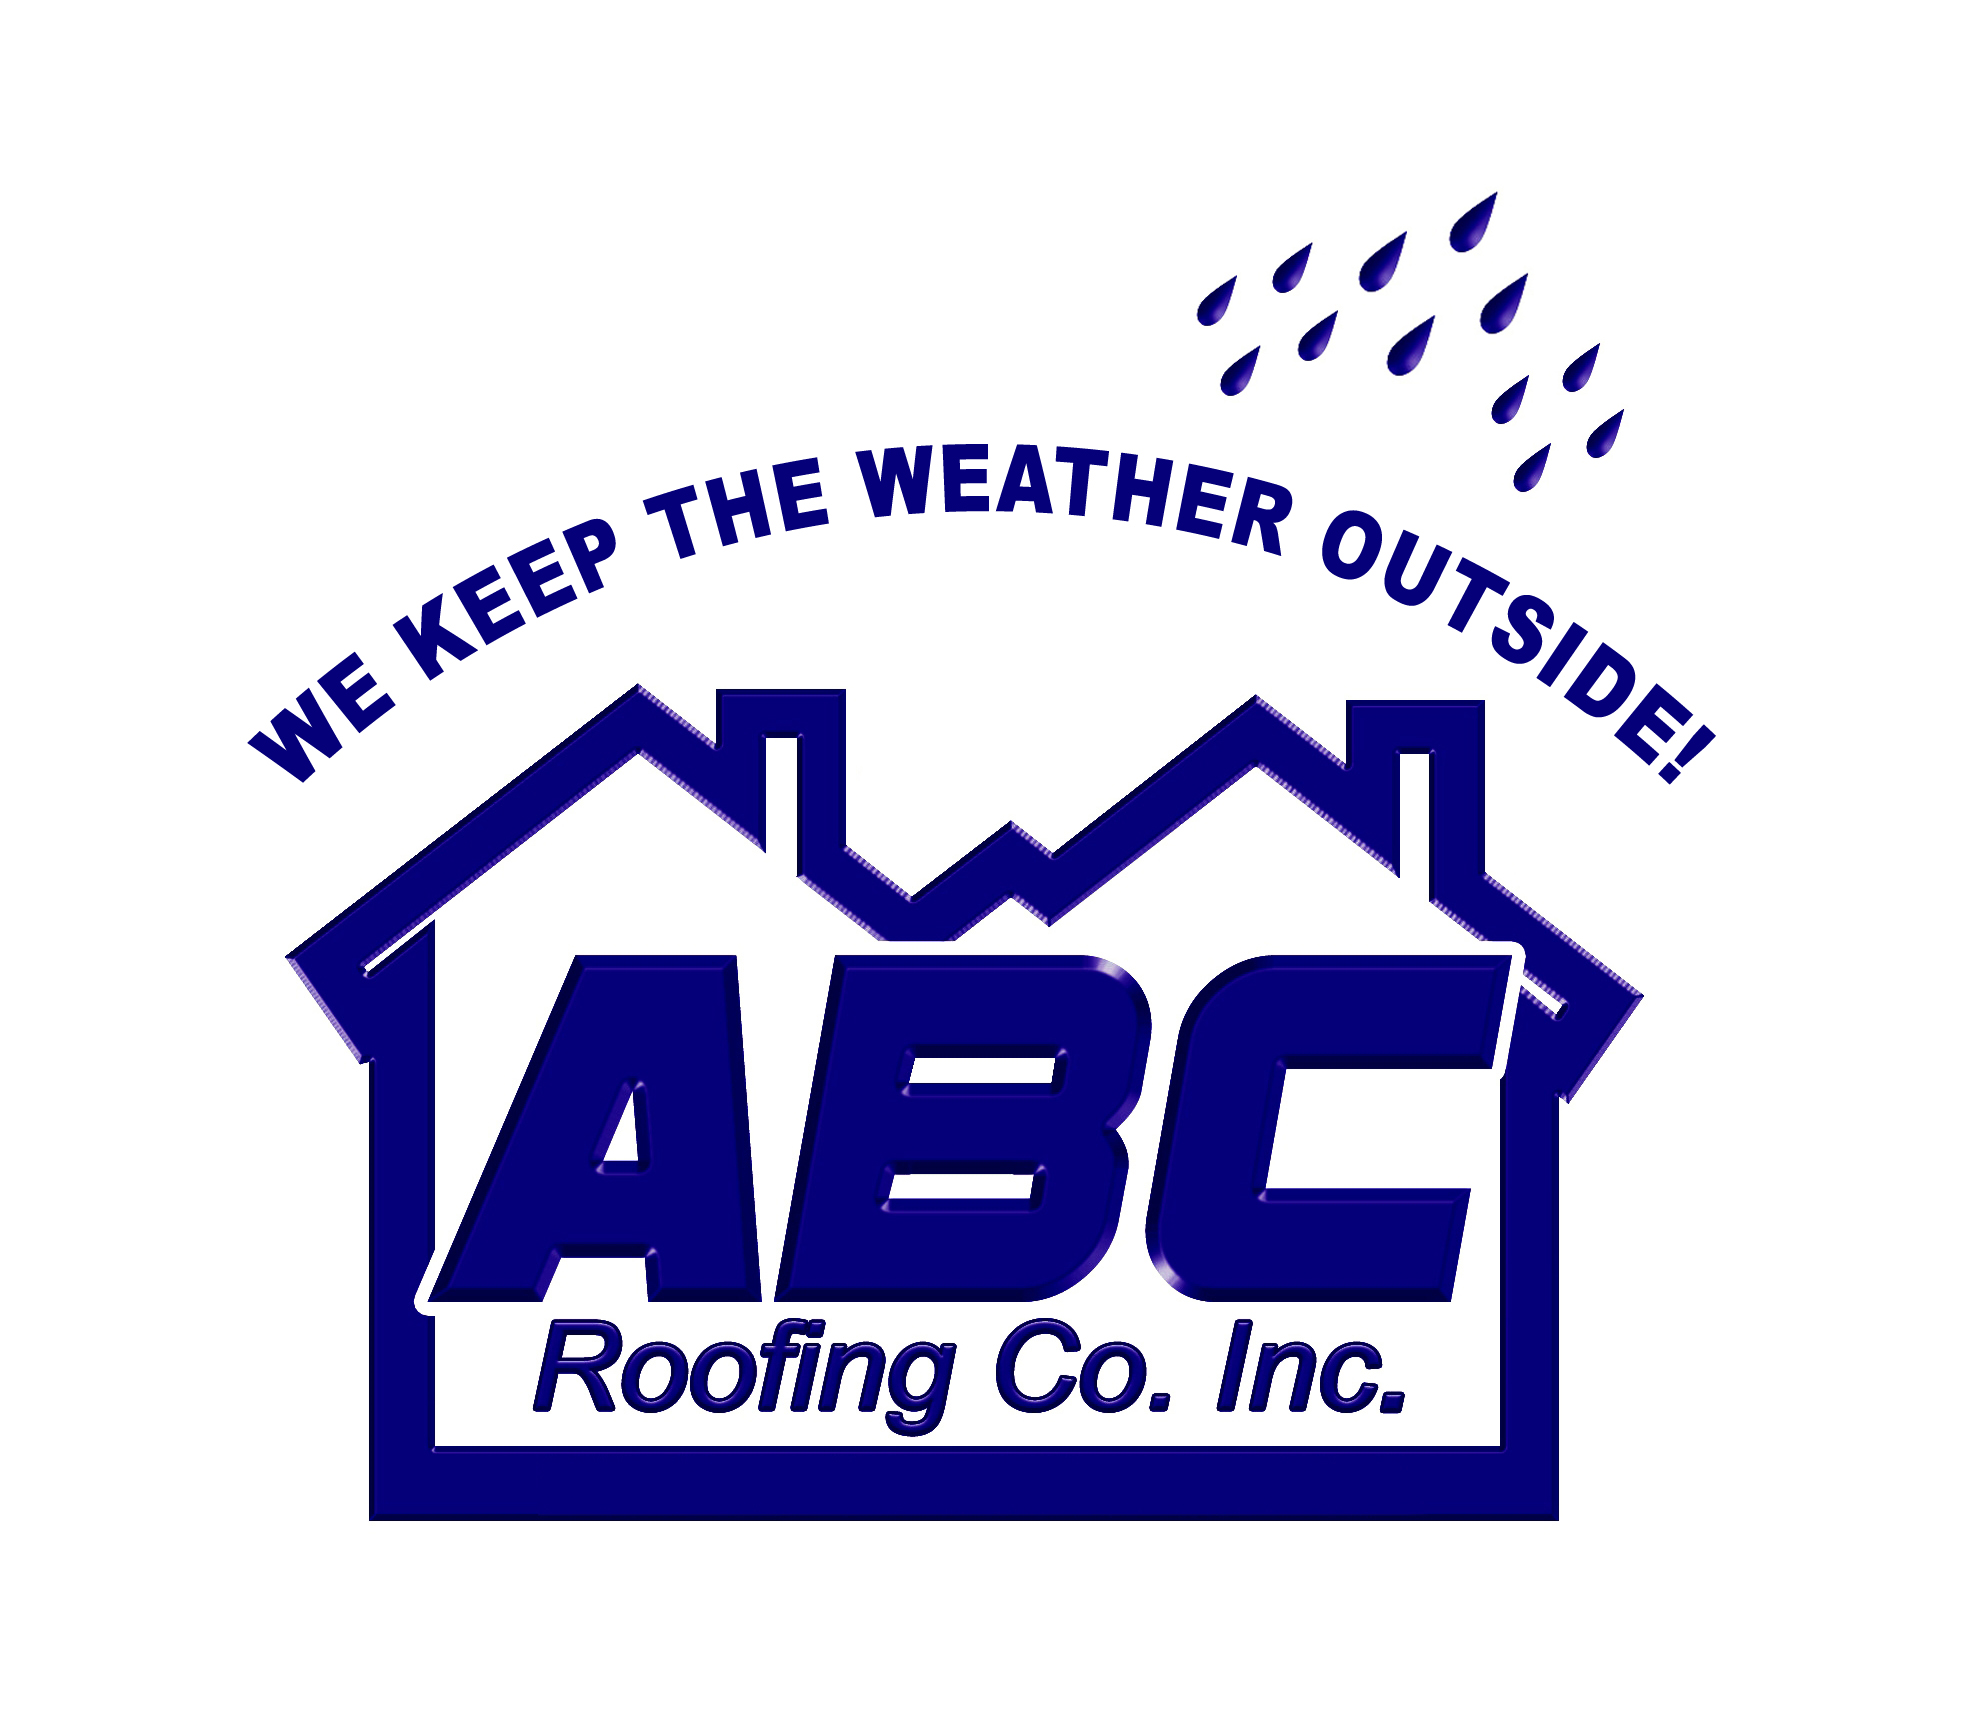 raise da roof! your roof! thanks abc! - Click link below.